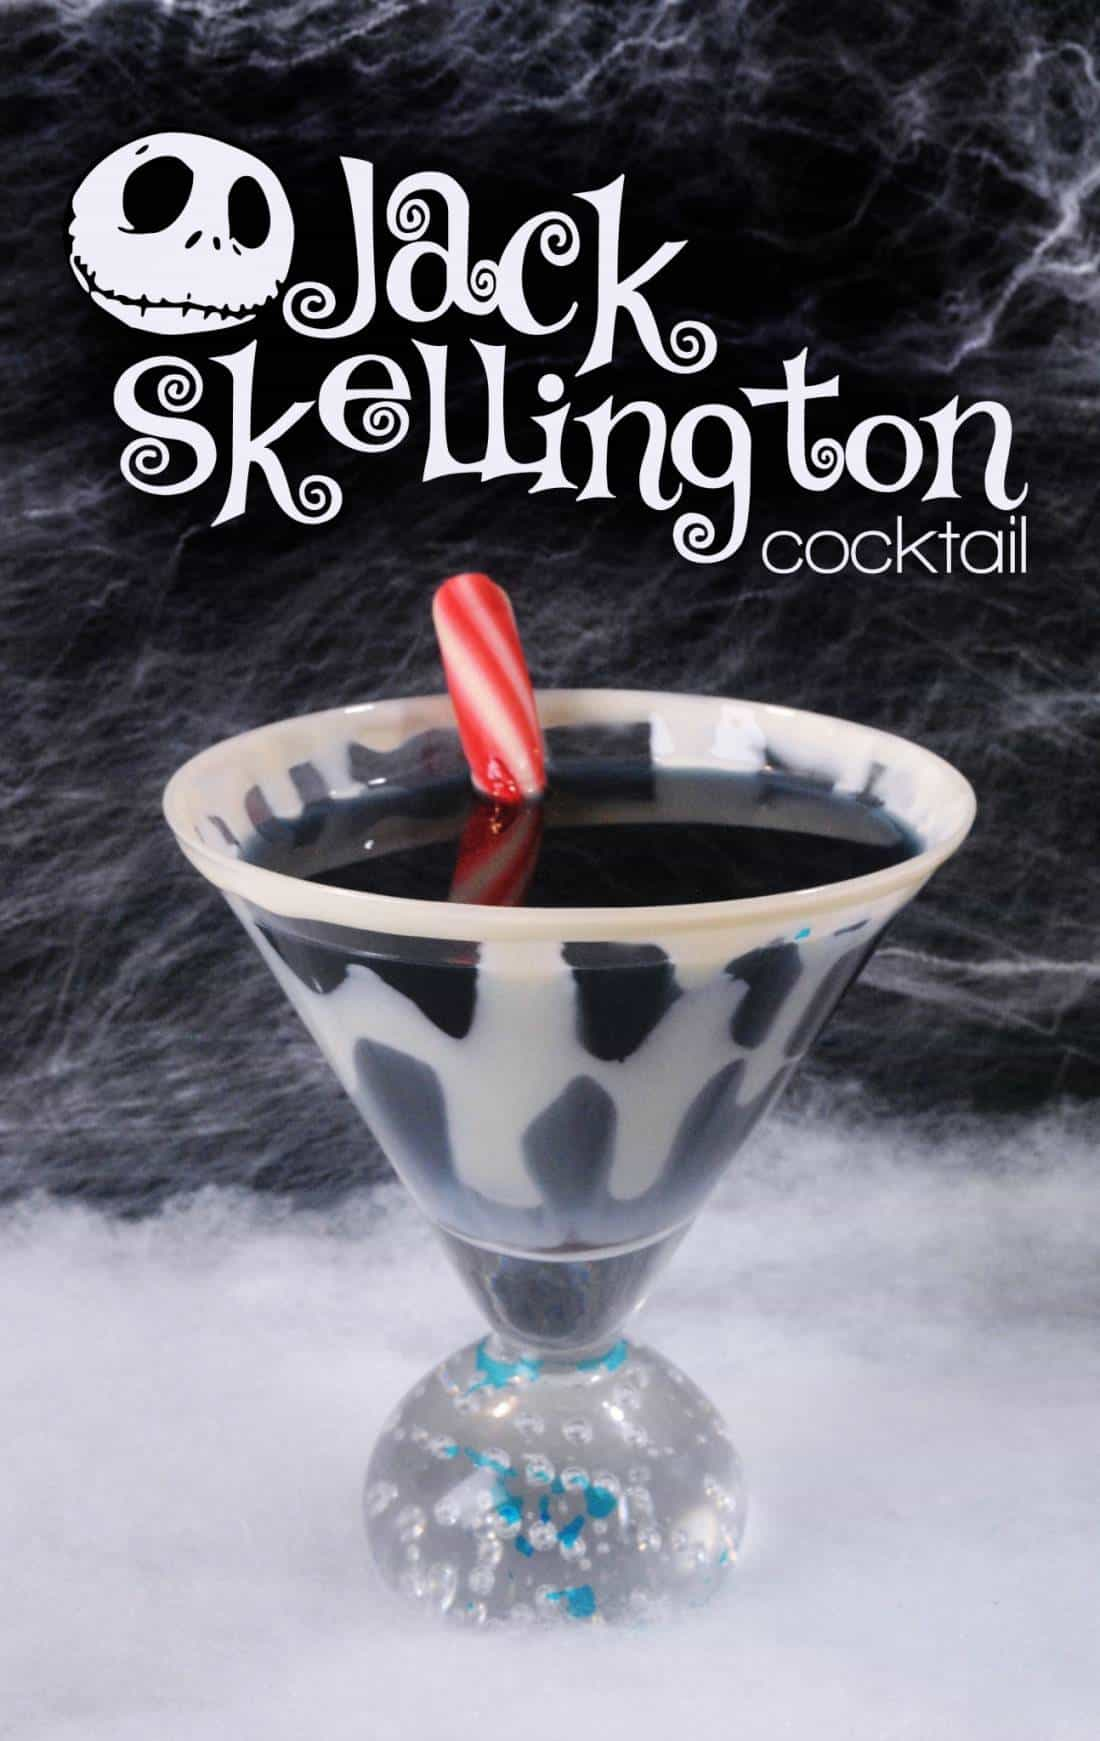 jack-skellington-cocktail-pinterest